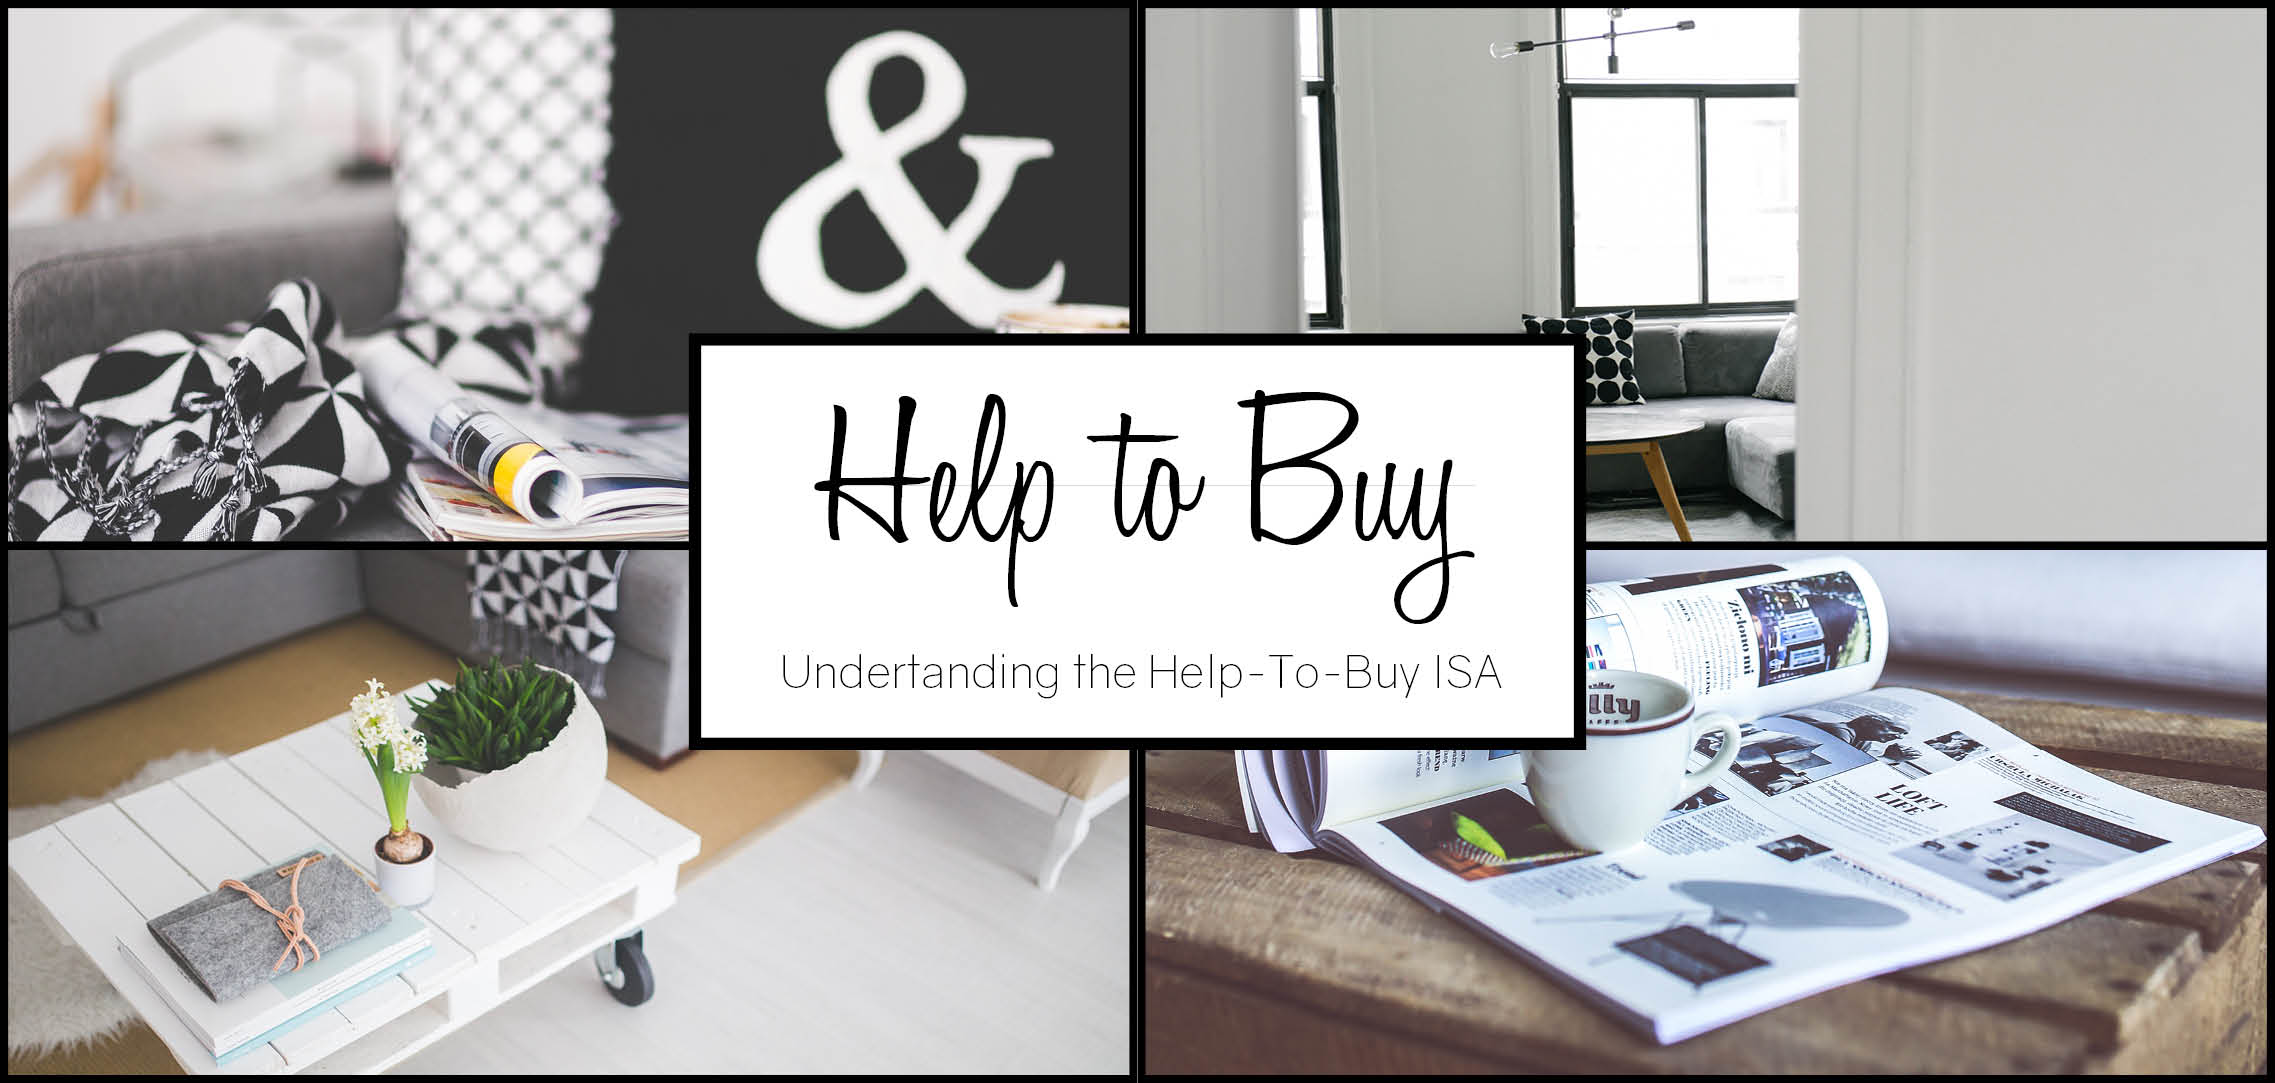 Help-to-Buy ISA